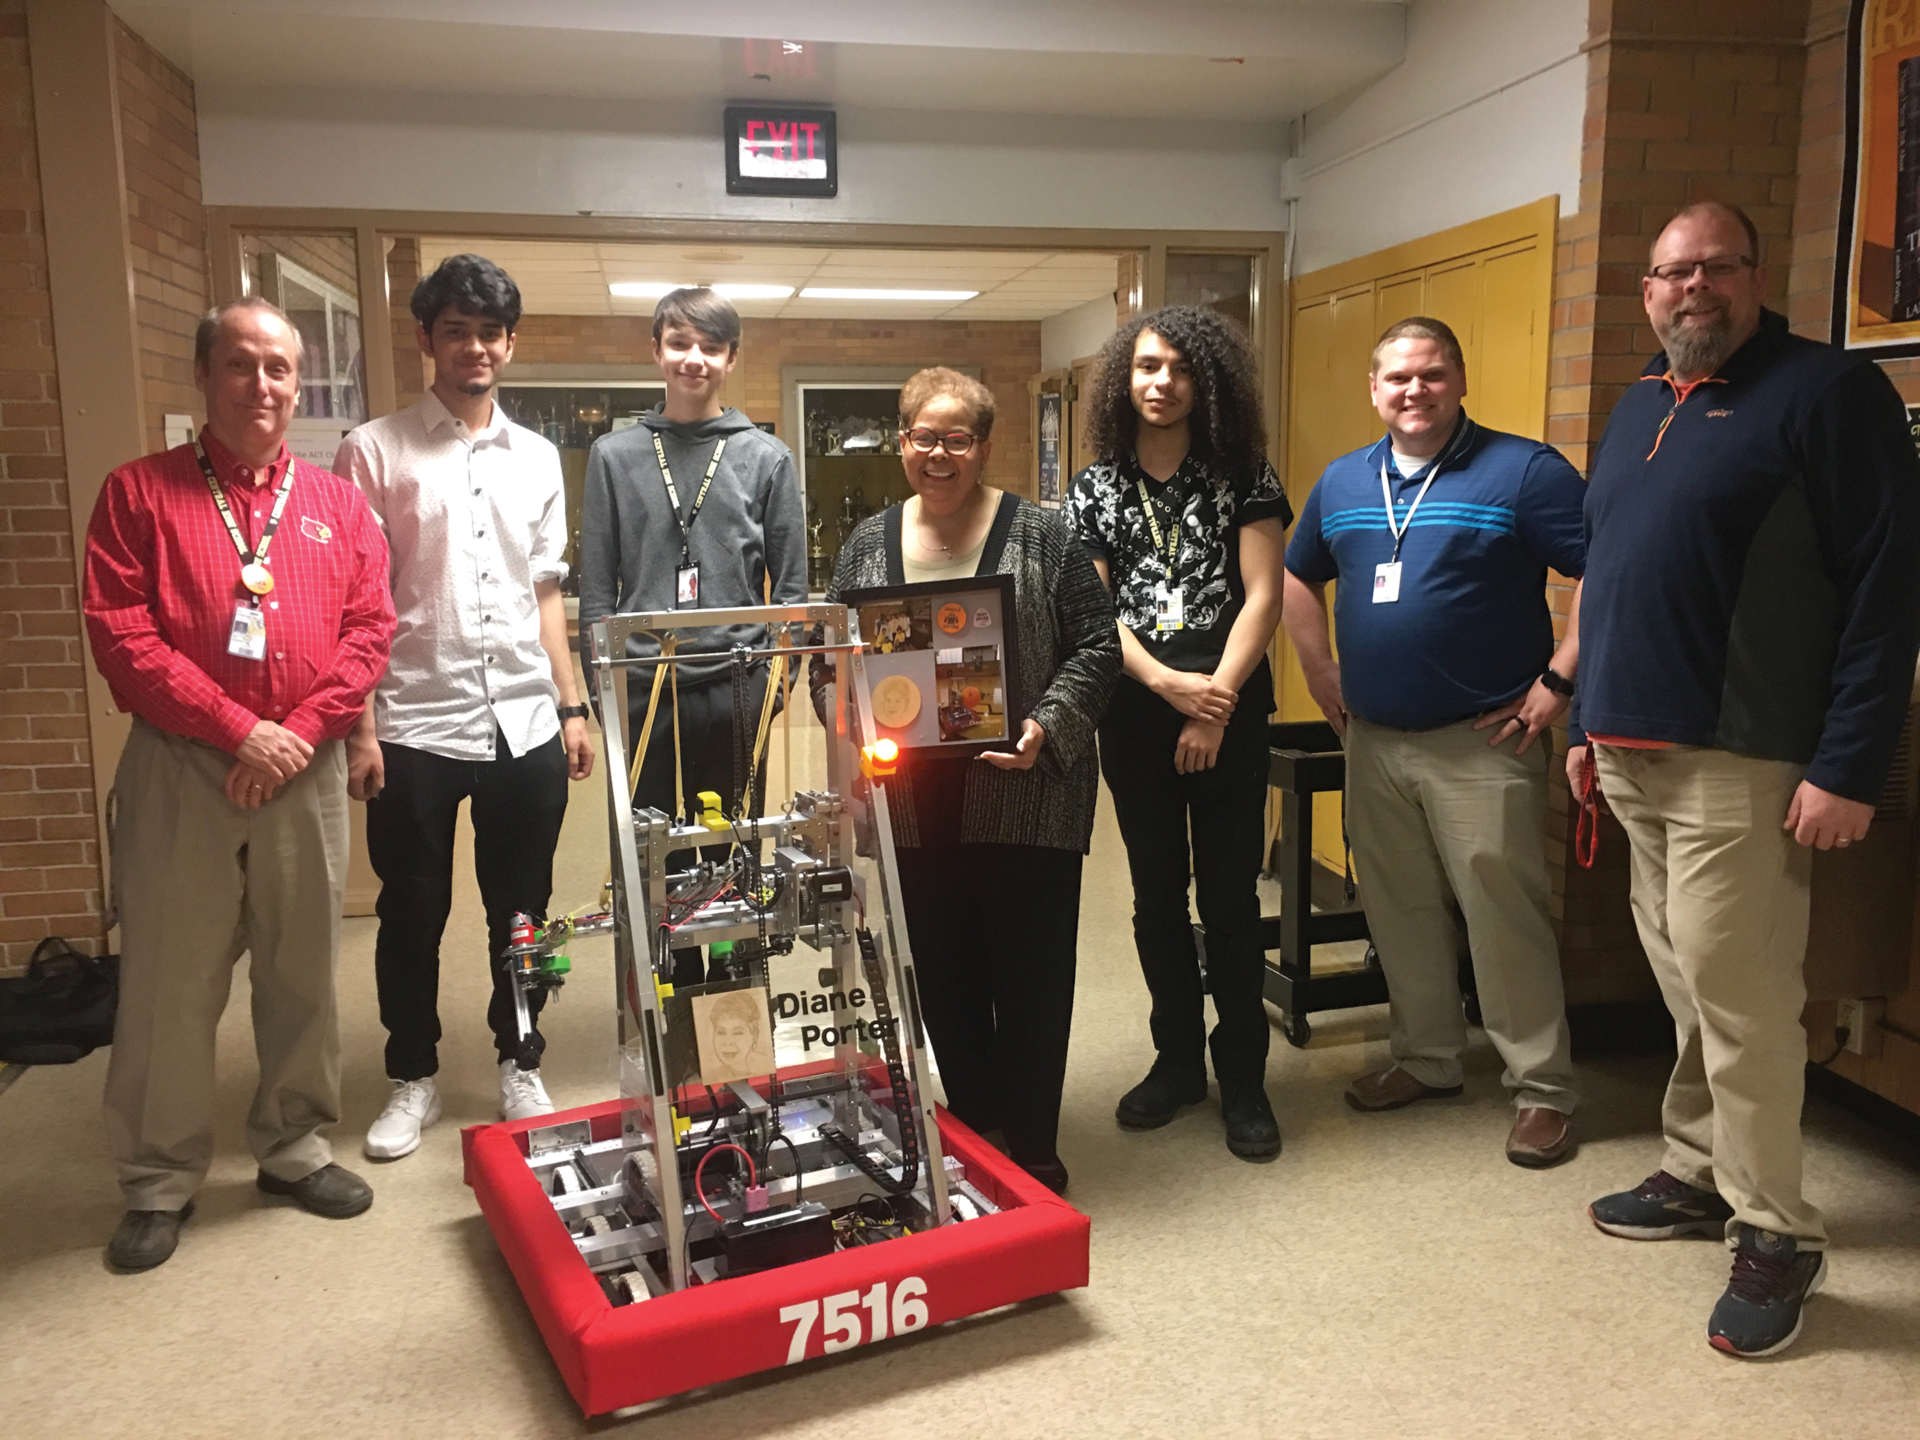 The robotics team at Central High School, the Centrons, named their first robot in honor of Jefferson County school board chairwoman Diane Porter. (Photo provided by JCPS)